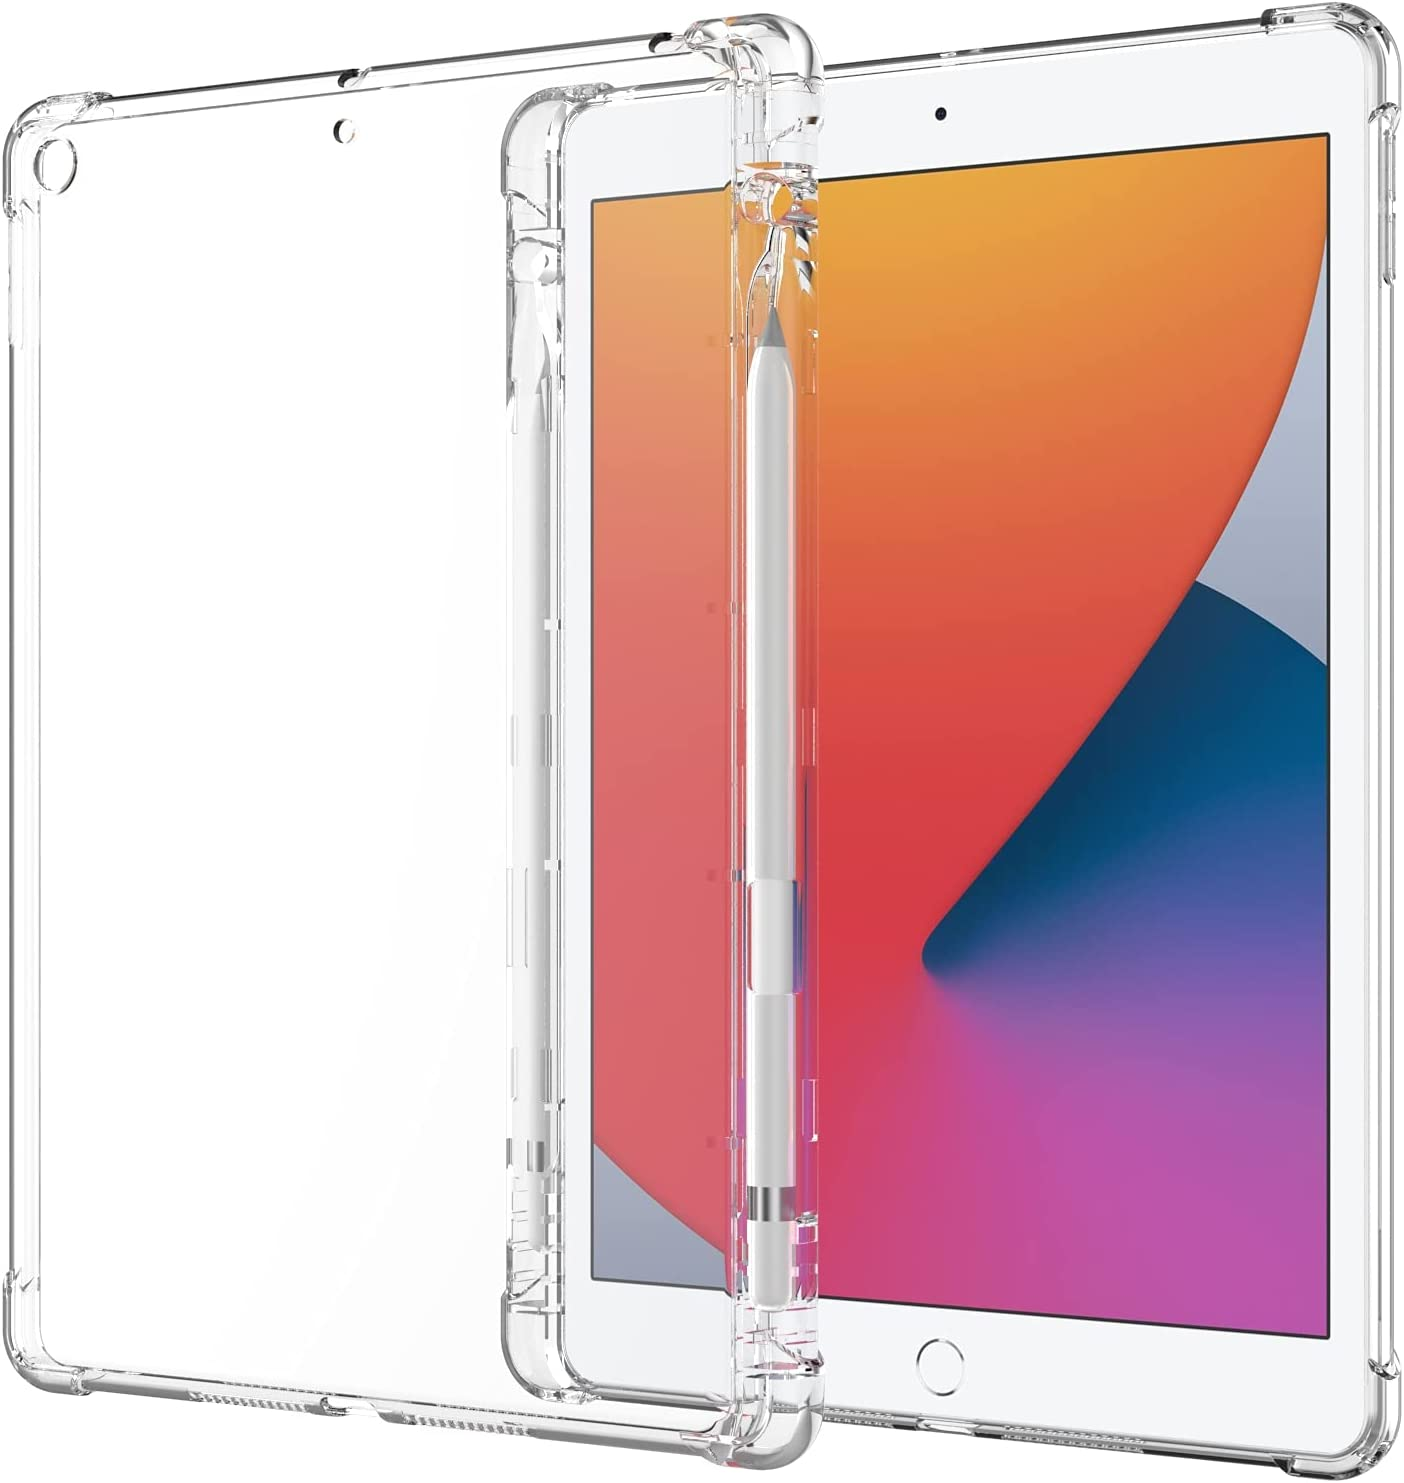 Clear Case for New iPad 10.2 8th generation 2020/ 7th generation 2019 Release with Pencil Holder, Shockproof Transparent Back Cover for iPad 10.2 inch, Soft TPU Silicon Protective Shell For iPad 10.2